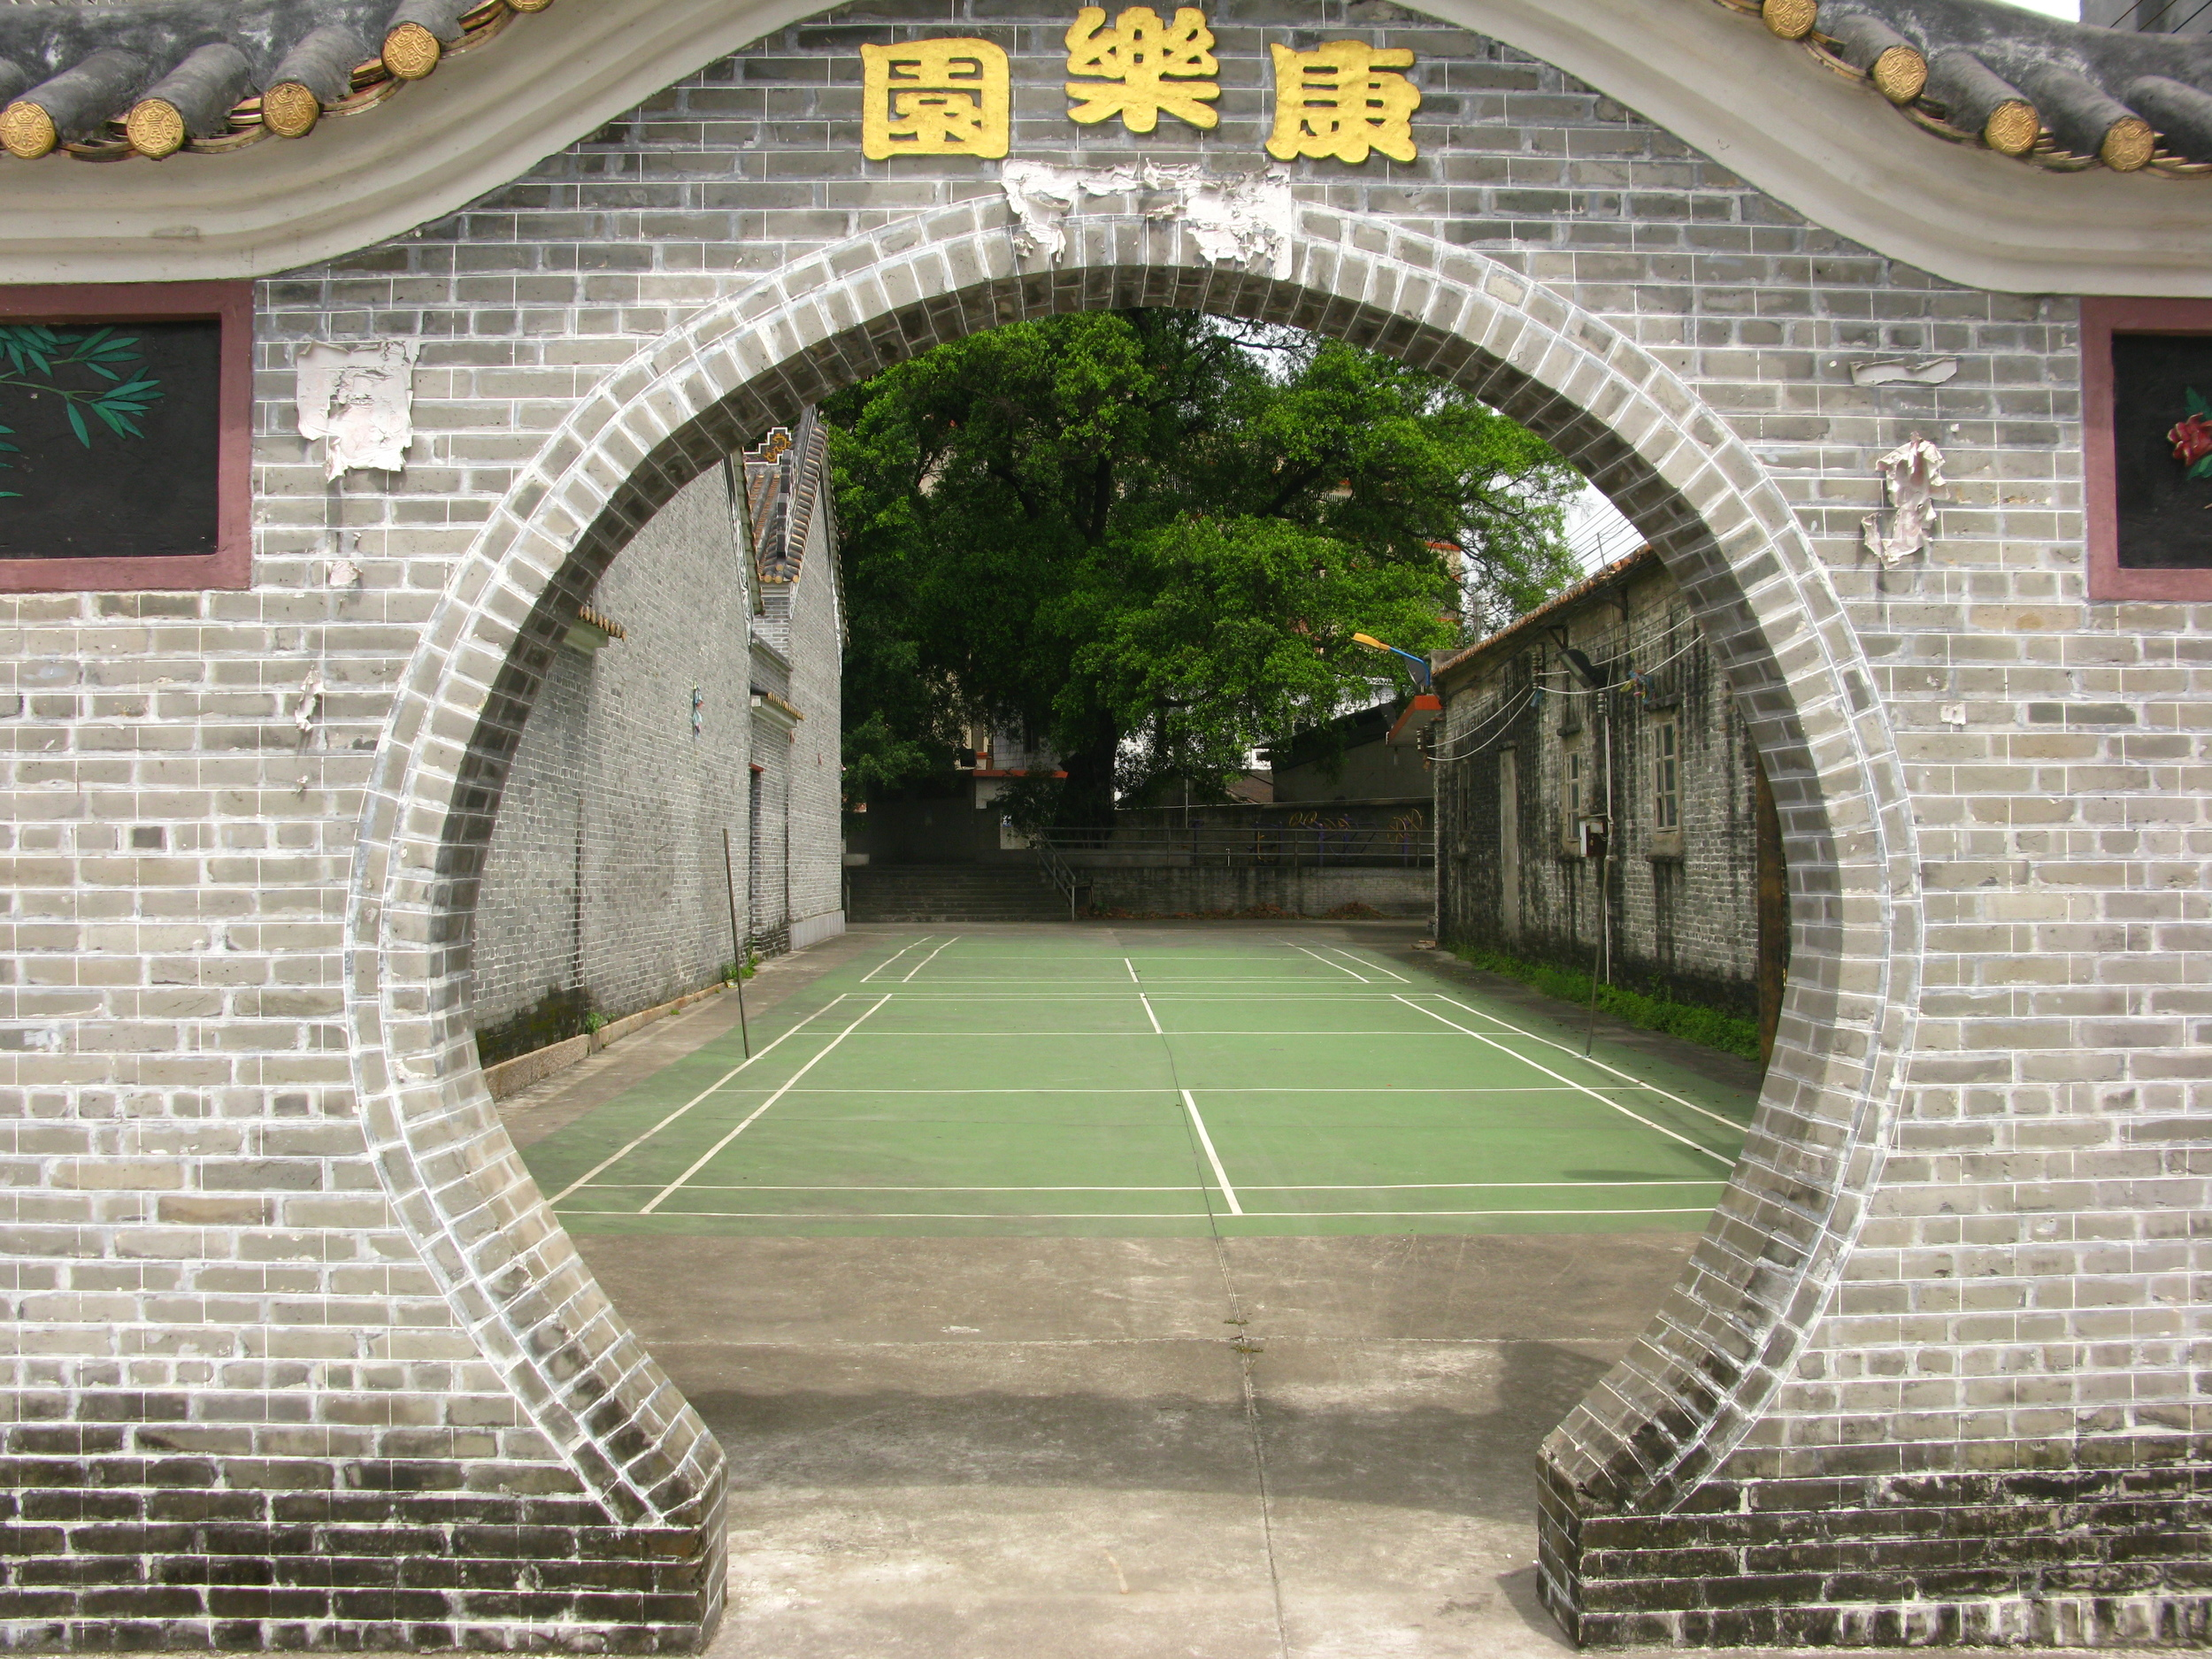 Outside are badminton courts and playground space